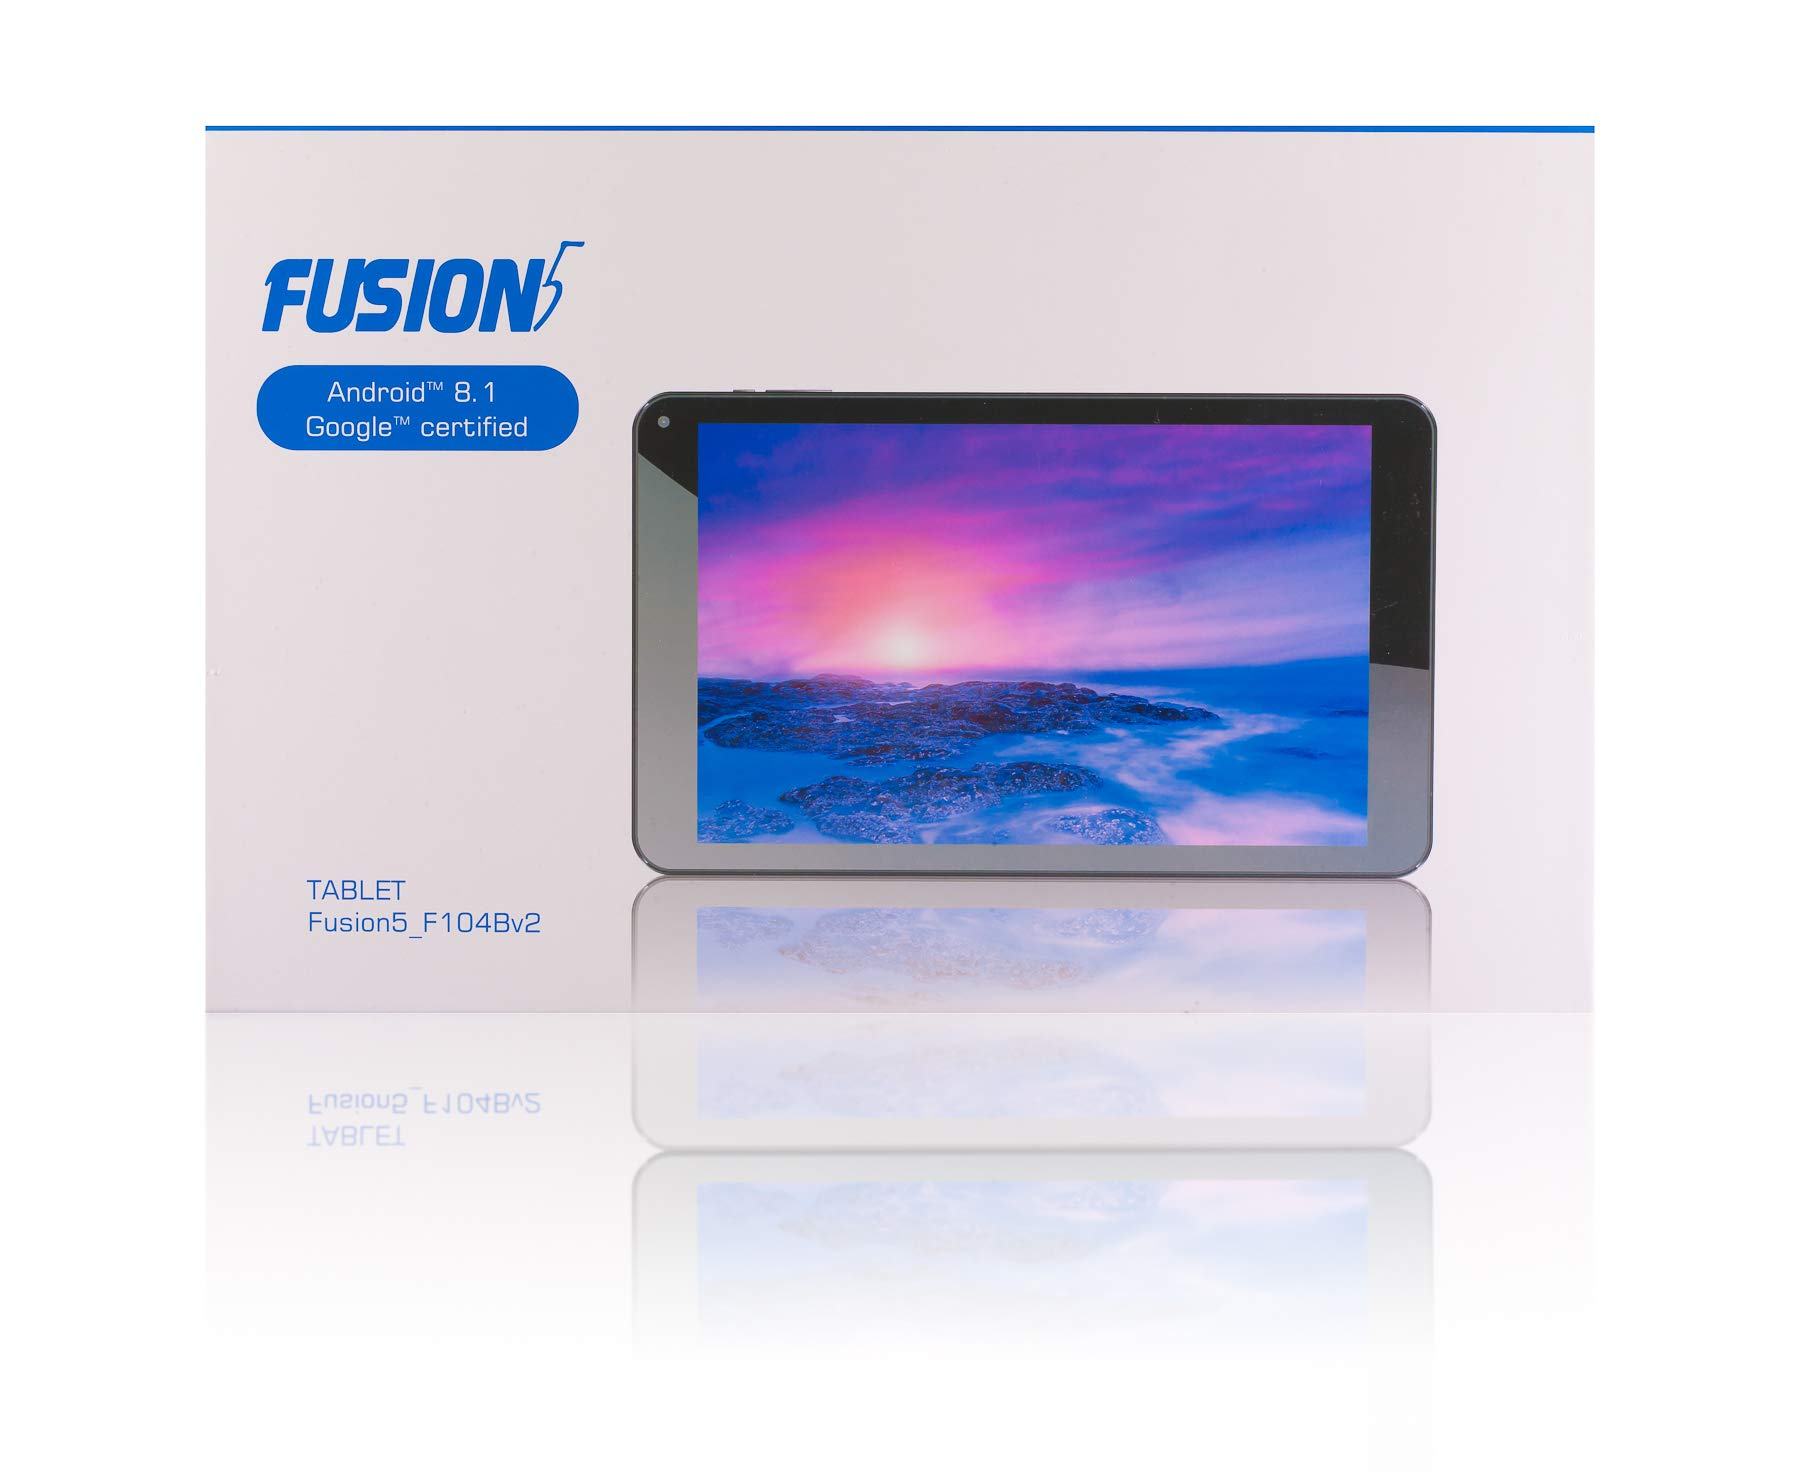 Fusion5-104Bv2-PRO-Android-Tablet-PC-Android-90-Pie-2GB-RAM-32GB-Storage-Bluetooth-Dual-Band-Wi-Fi-HDMI